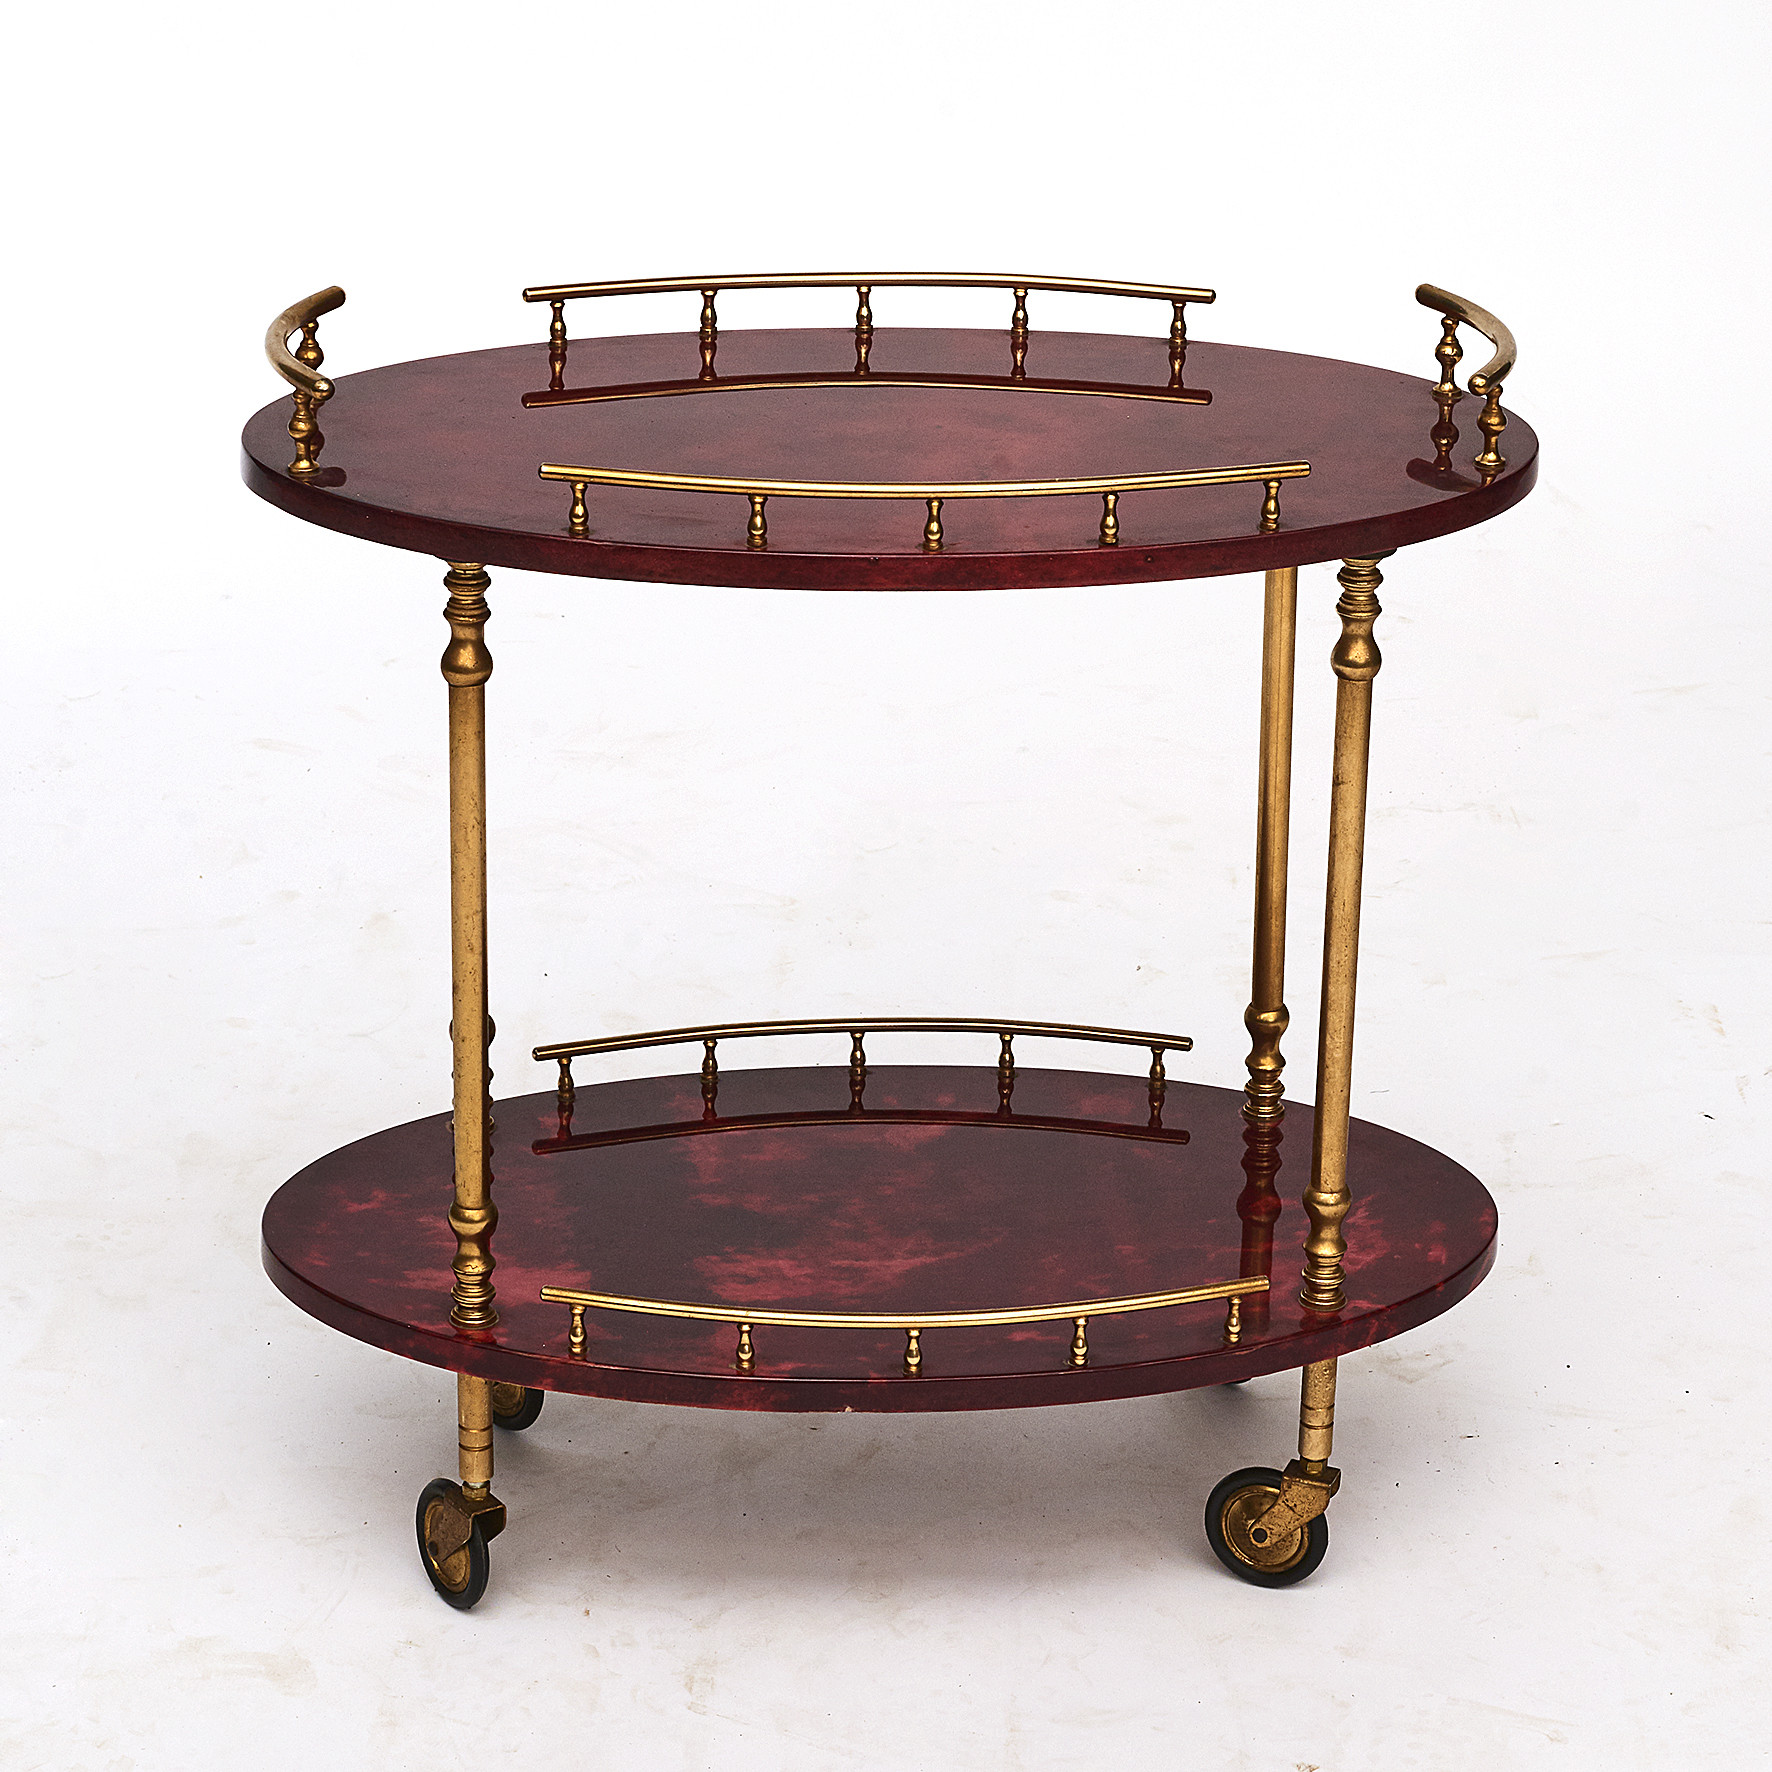 Aldo Tura. Mid-Century 2-Tier Red Goatskin Bar Cart or Tea Trolley